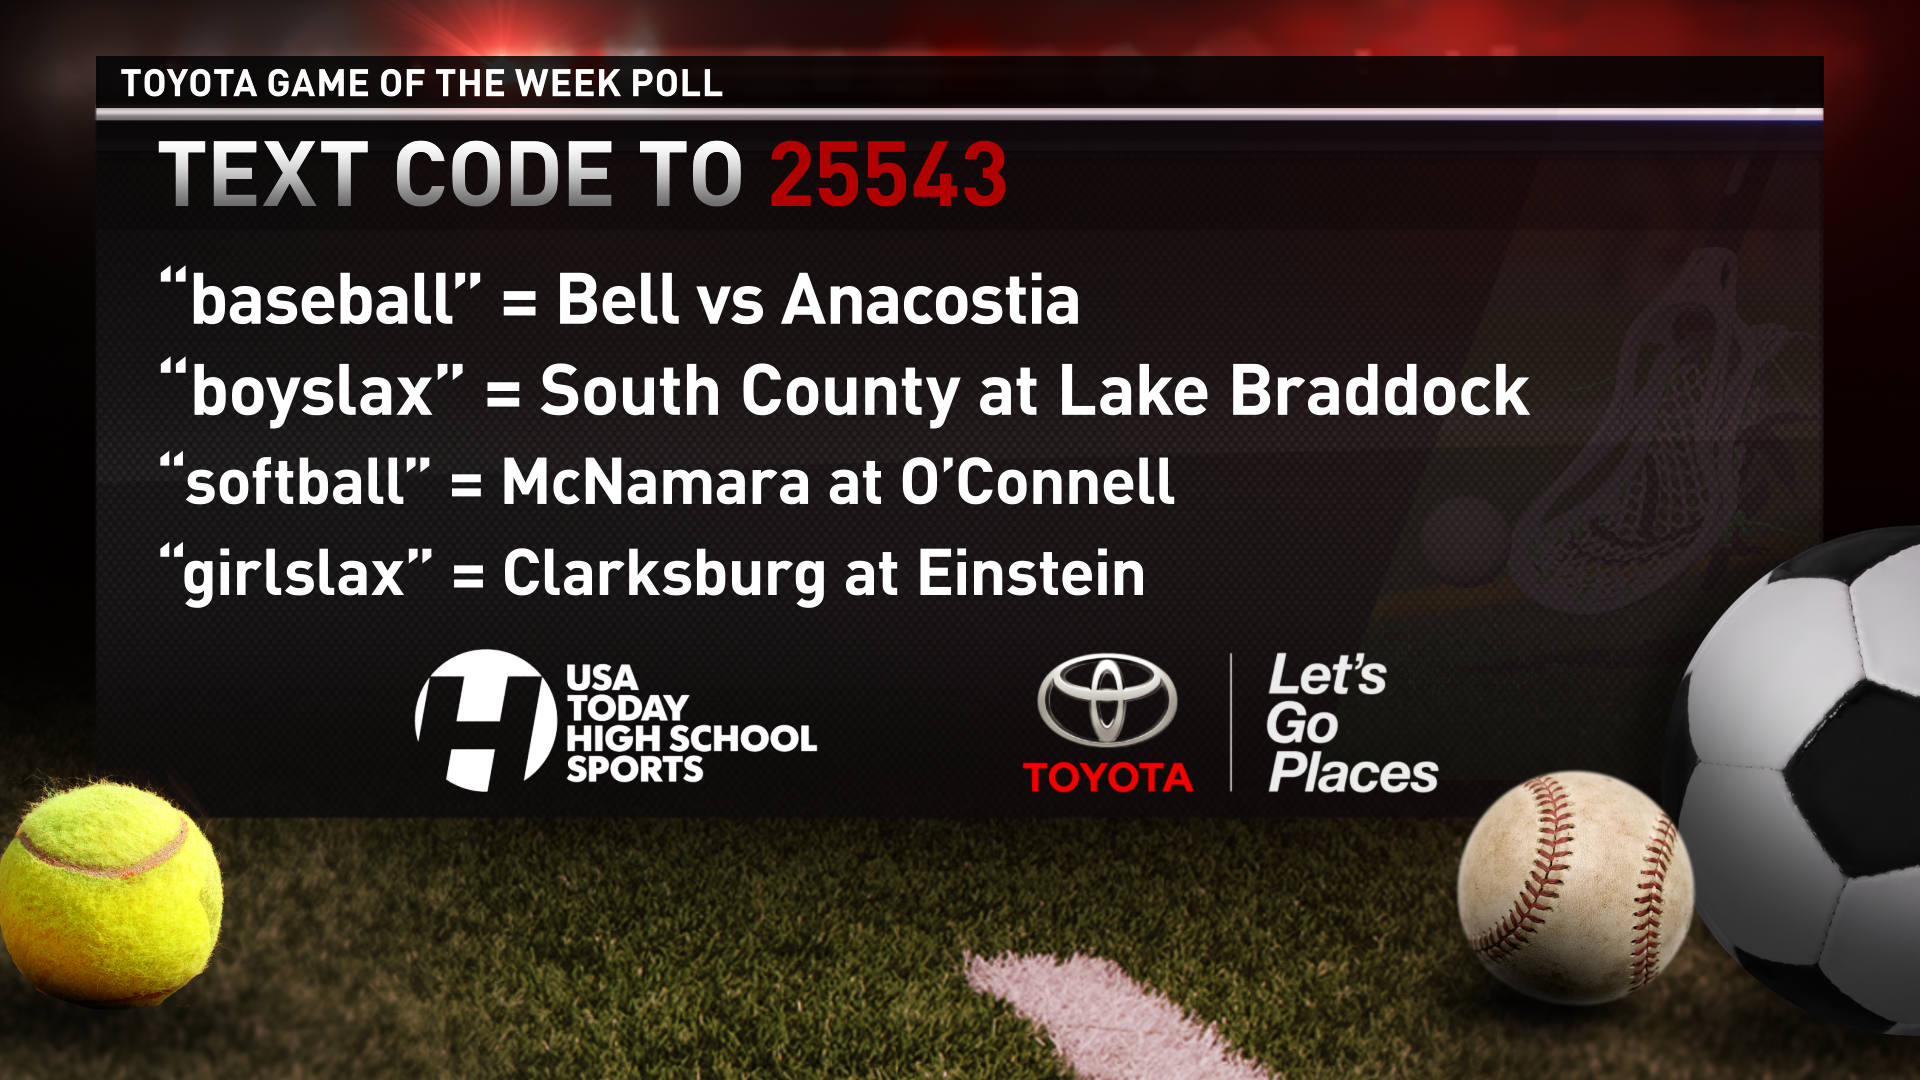 Toyota Game of the Week